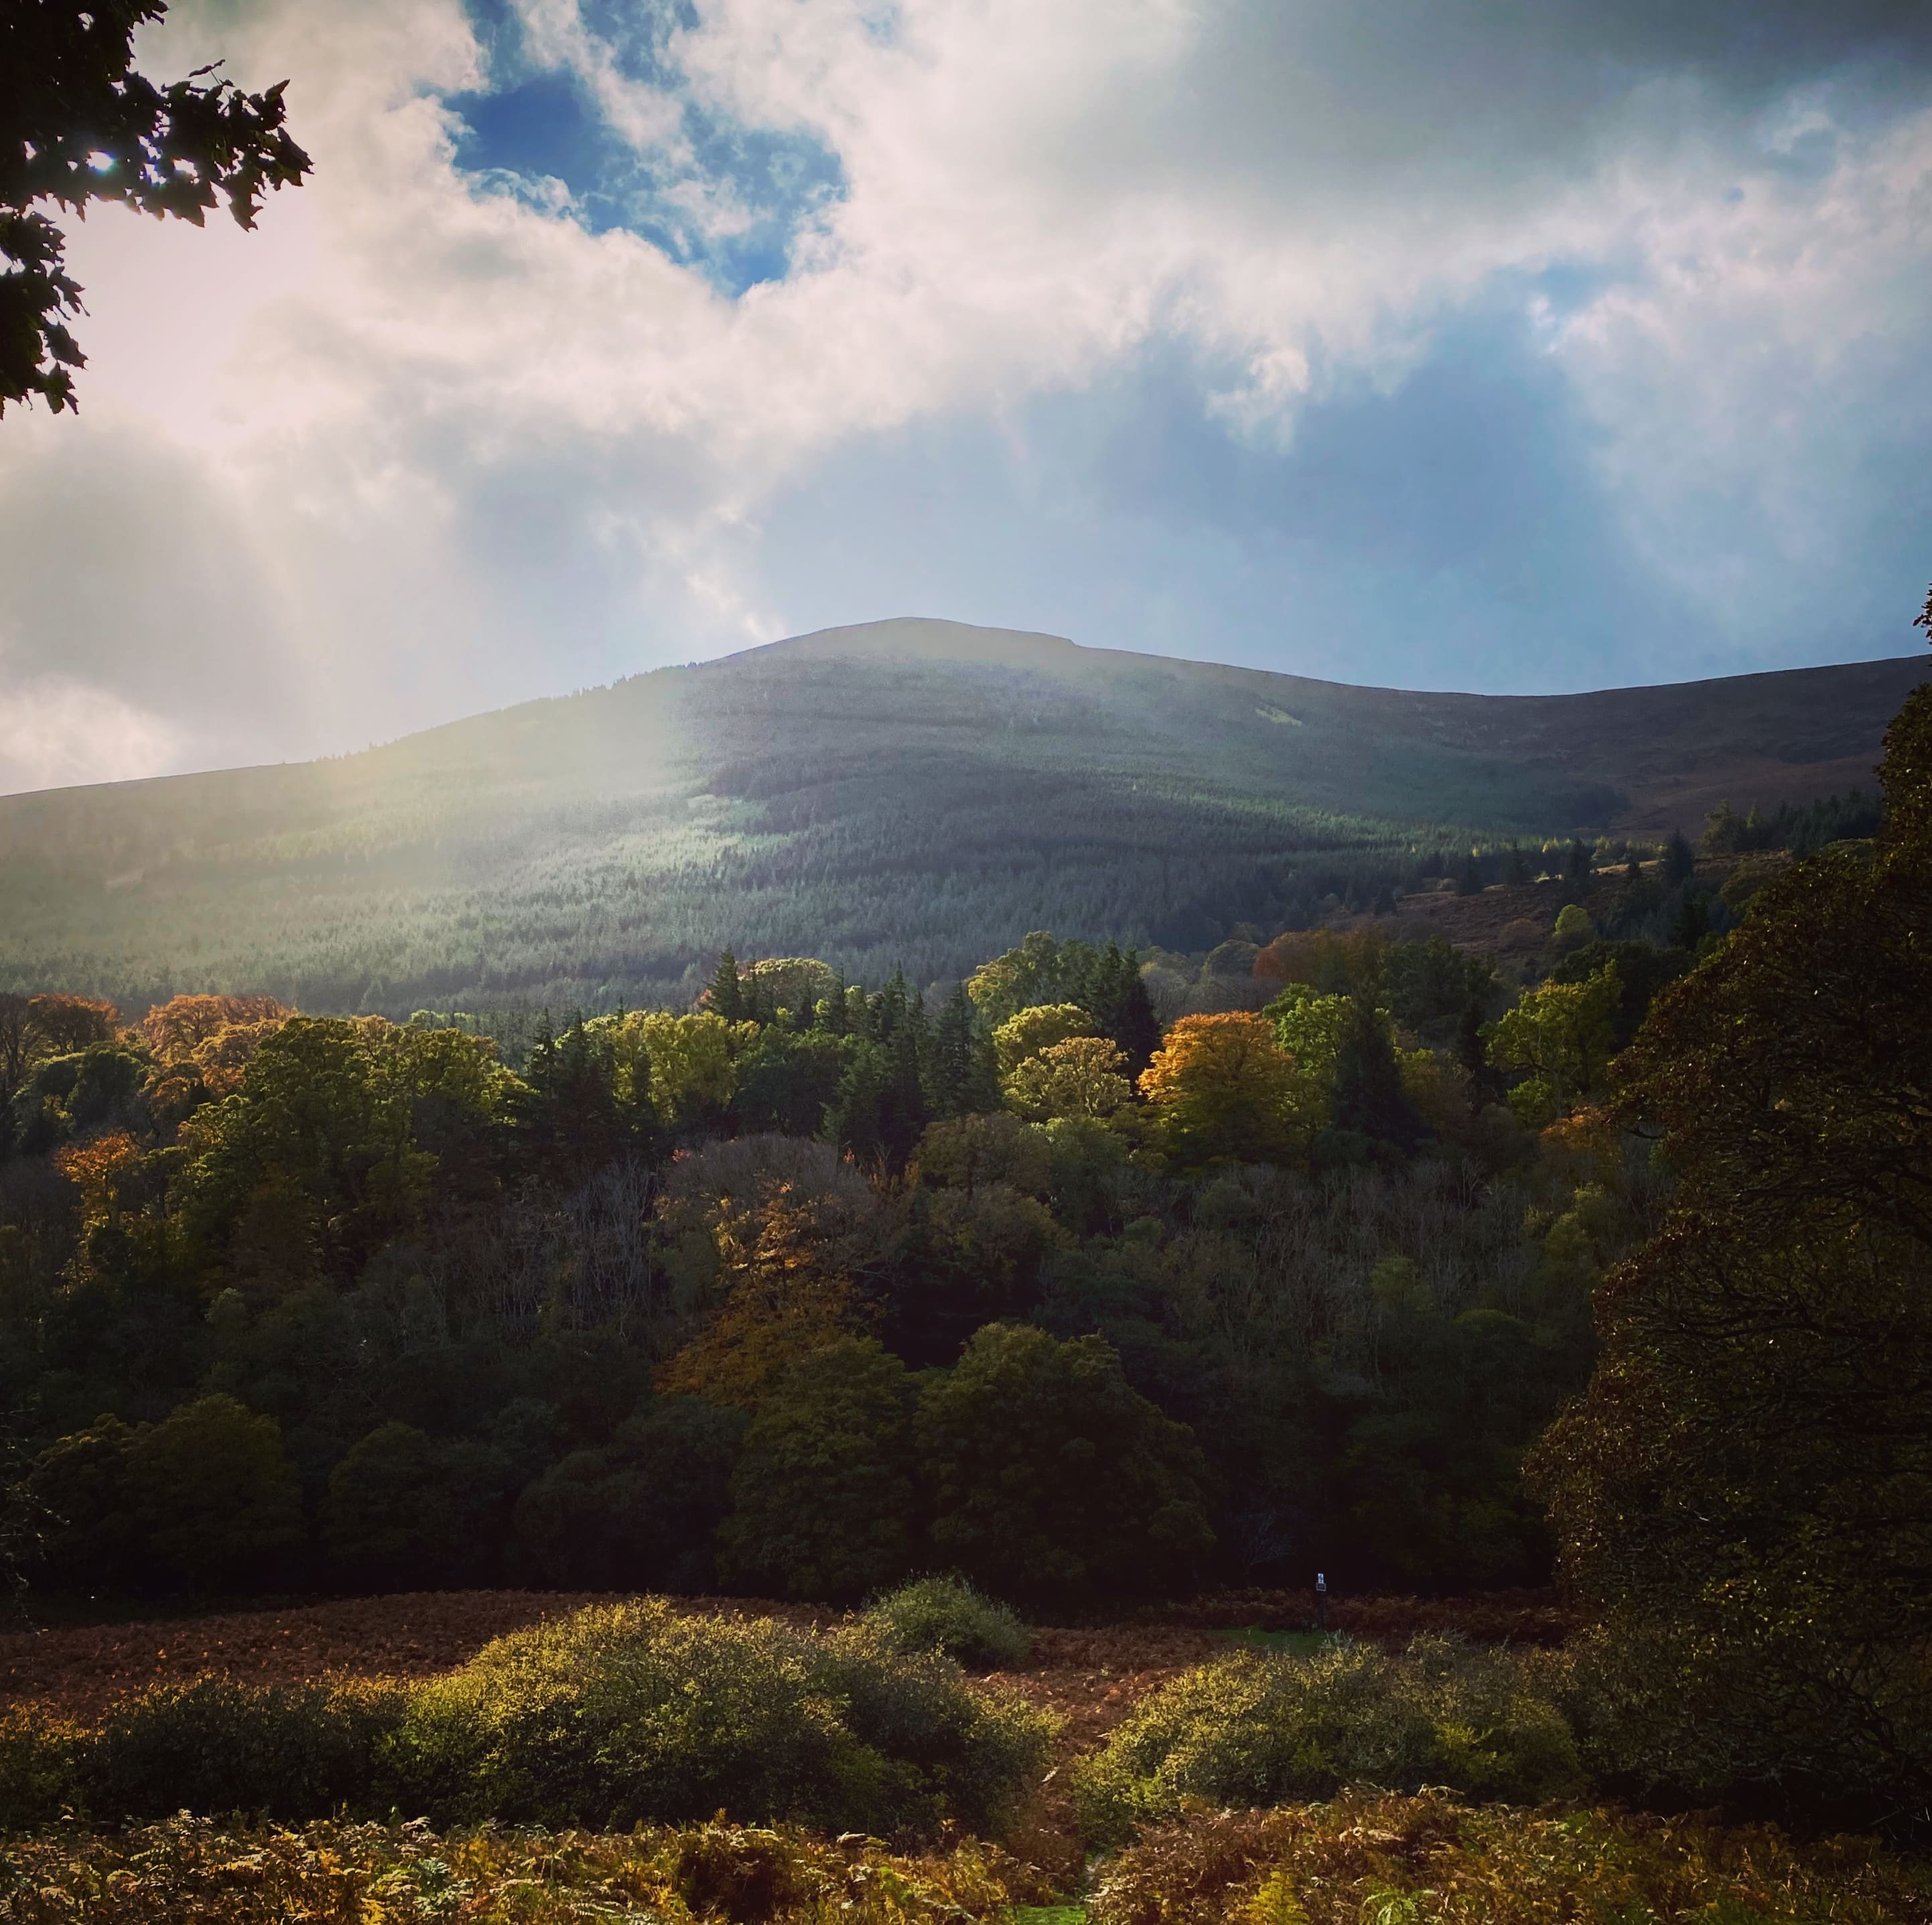 Forests in Glencree Valley